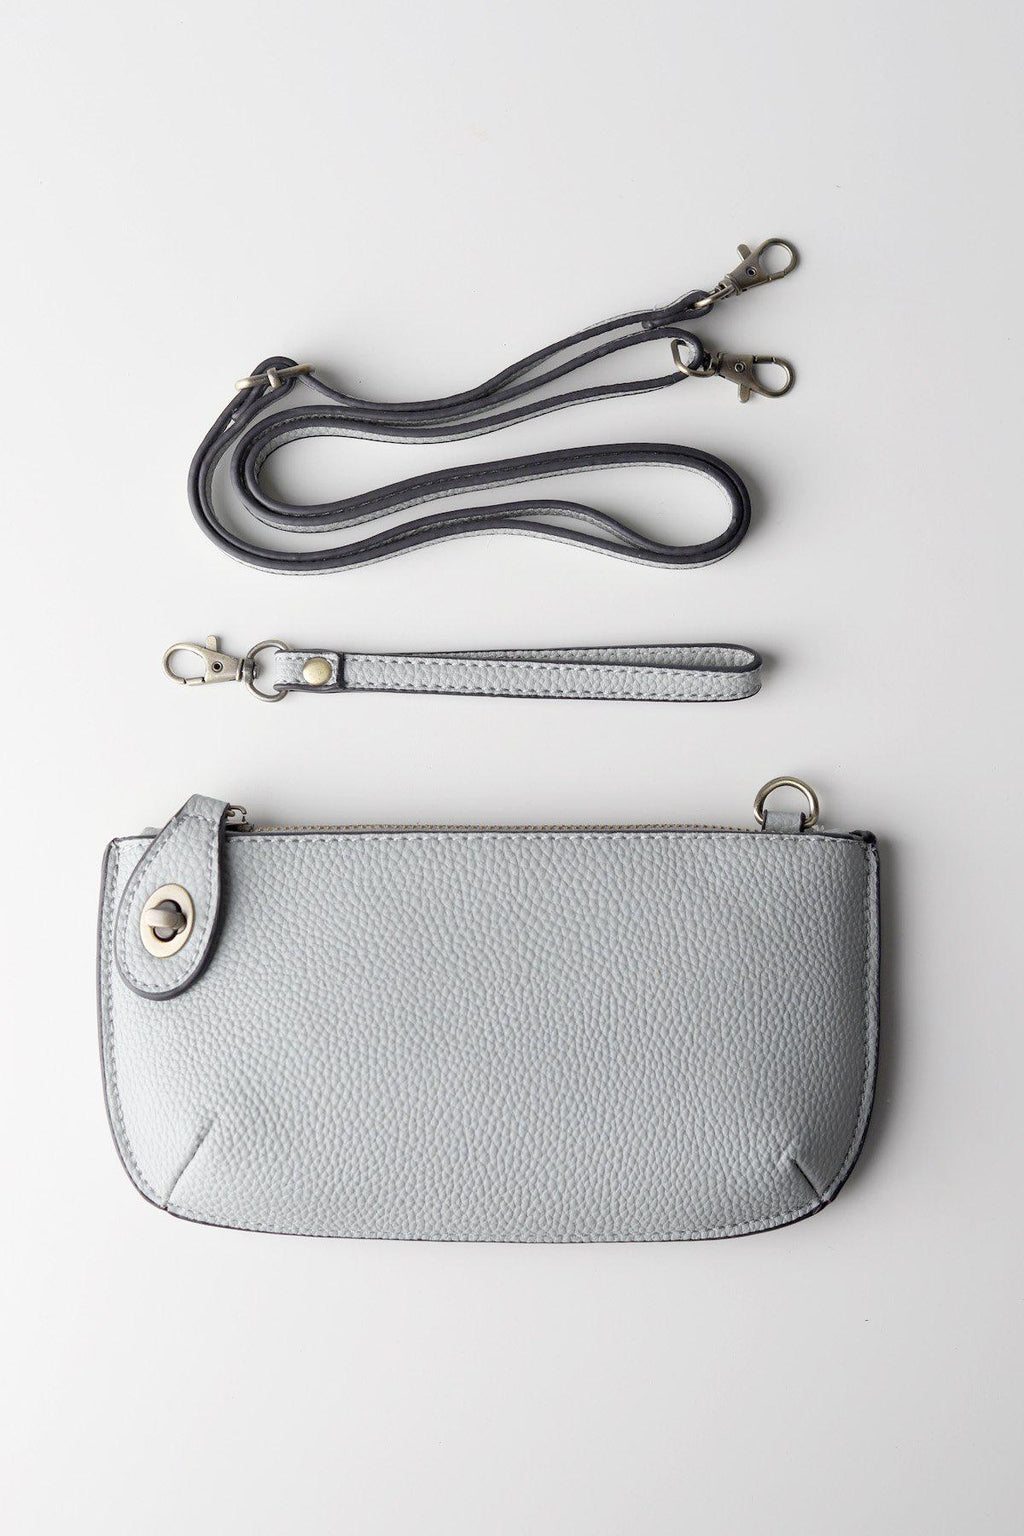 Wristlet Clutch / Grey - Gallery 512 Boutique